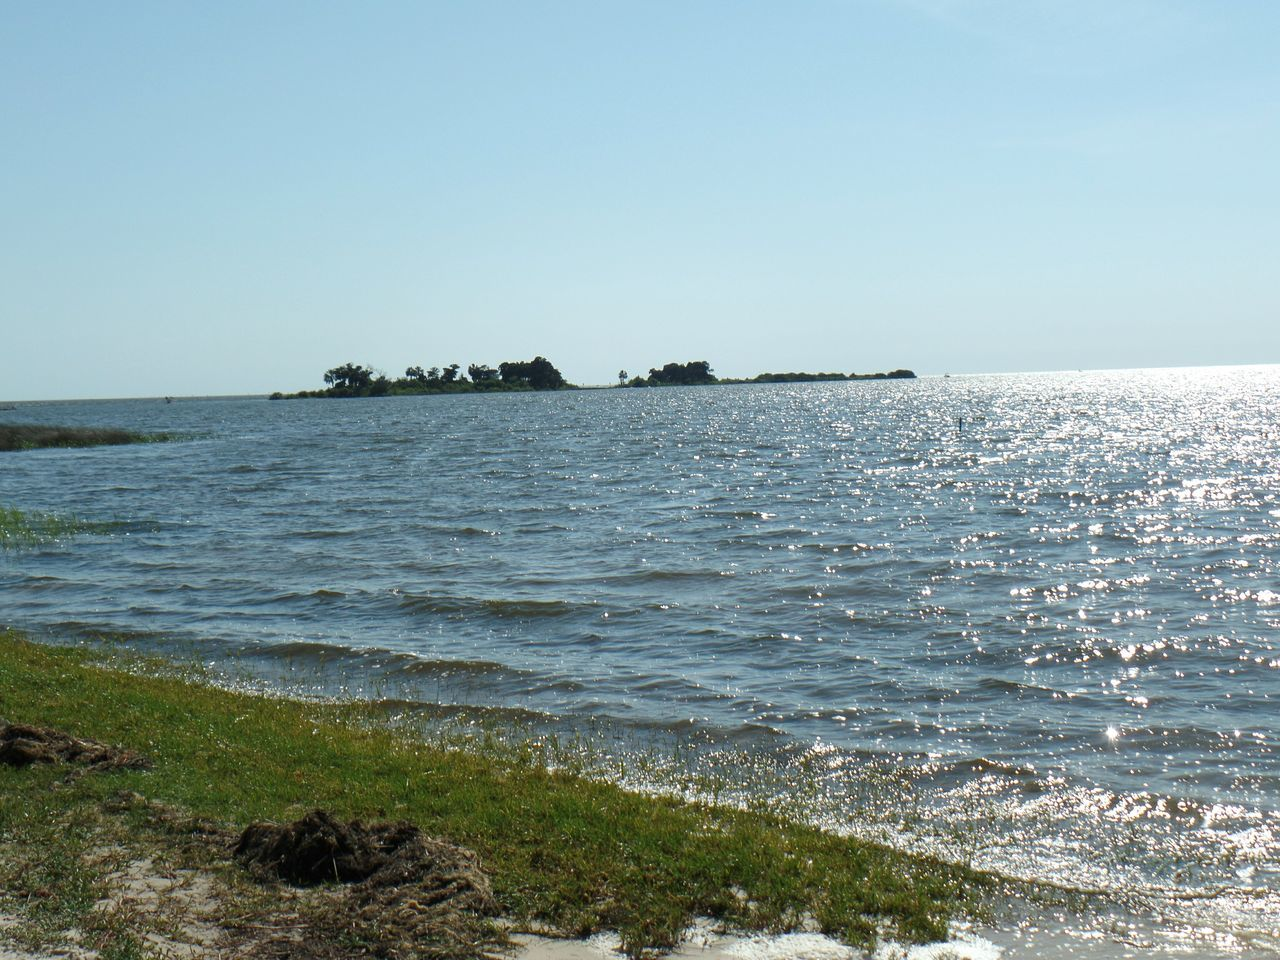 Nature Oceanview Yankeetown Fl Eye4photography  Check This Out MyPics Natural Beauty Naturephotography Spring2016 Naturelovers Awesome Floridaliving  Checkthis Out Florida Nature FloridaCarmenVazquezPhotography Florida Life Mothers Day Beautiful Day Florida Skies Floridafishing Nature Photography Taking Pictures NiceShot